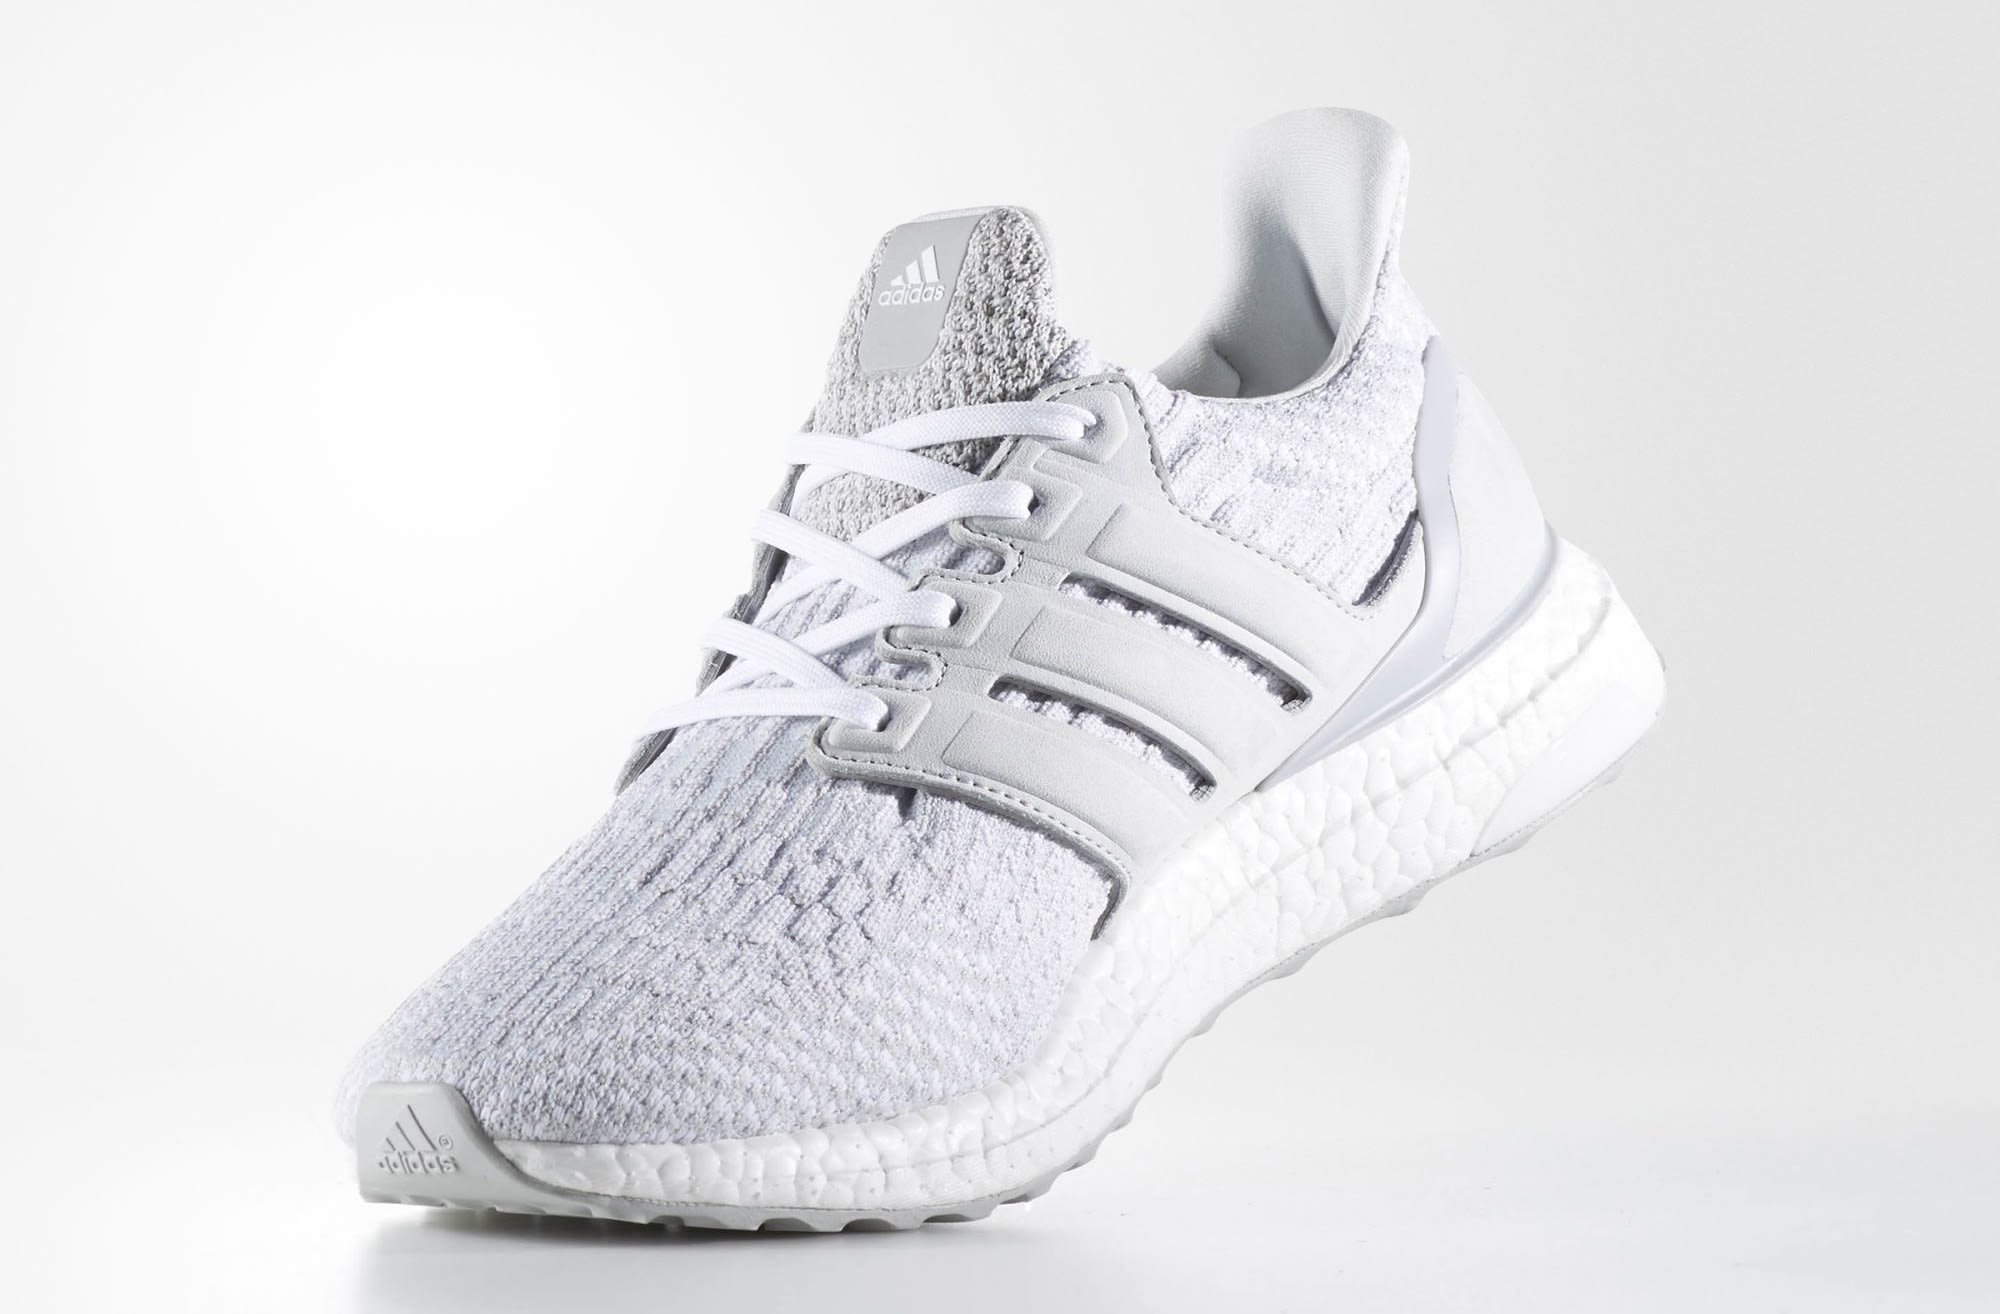 detailing d9e7c 4195f Reigning Champ Adidas Ultra Boost Grey BW1116 | Sole Collector